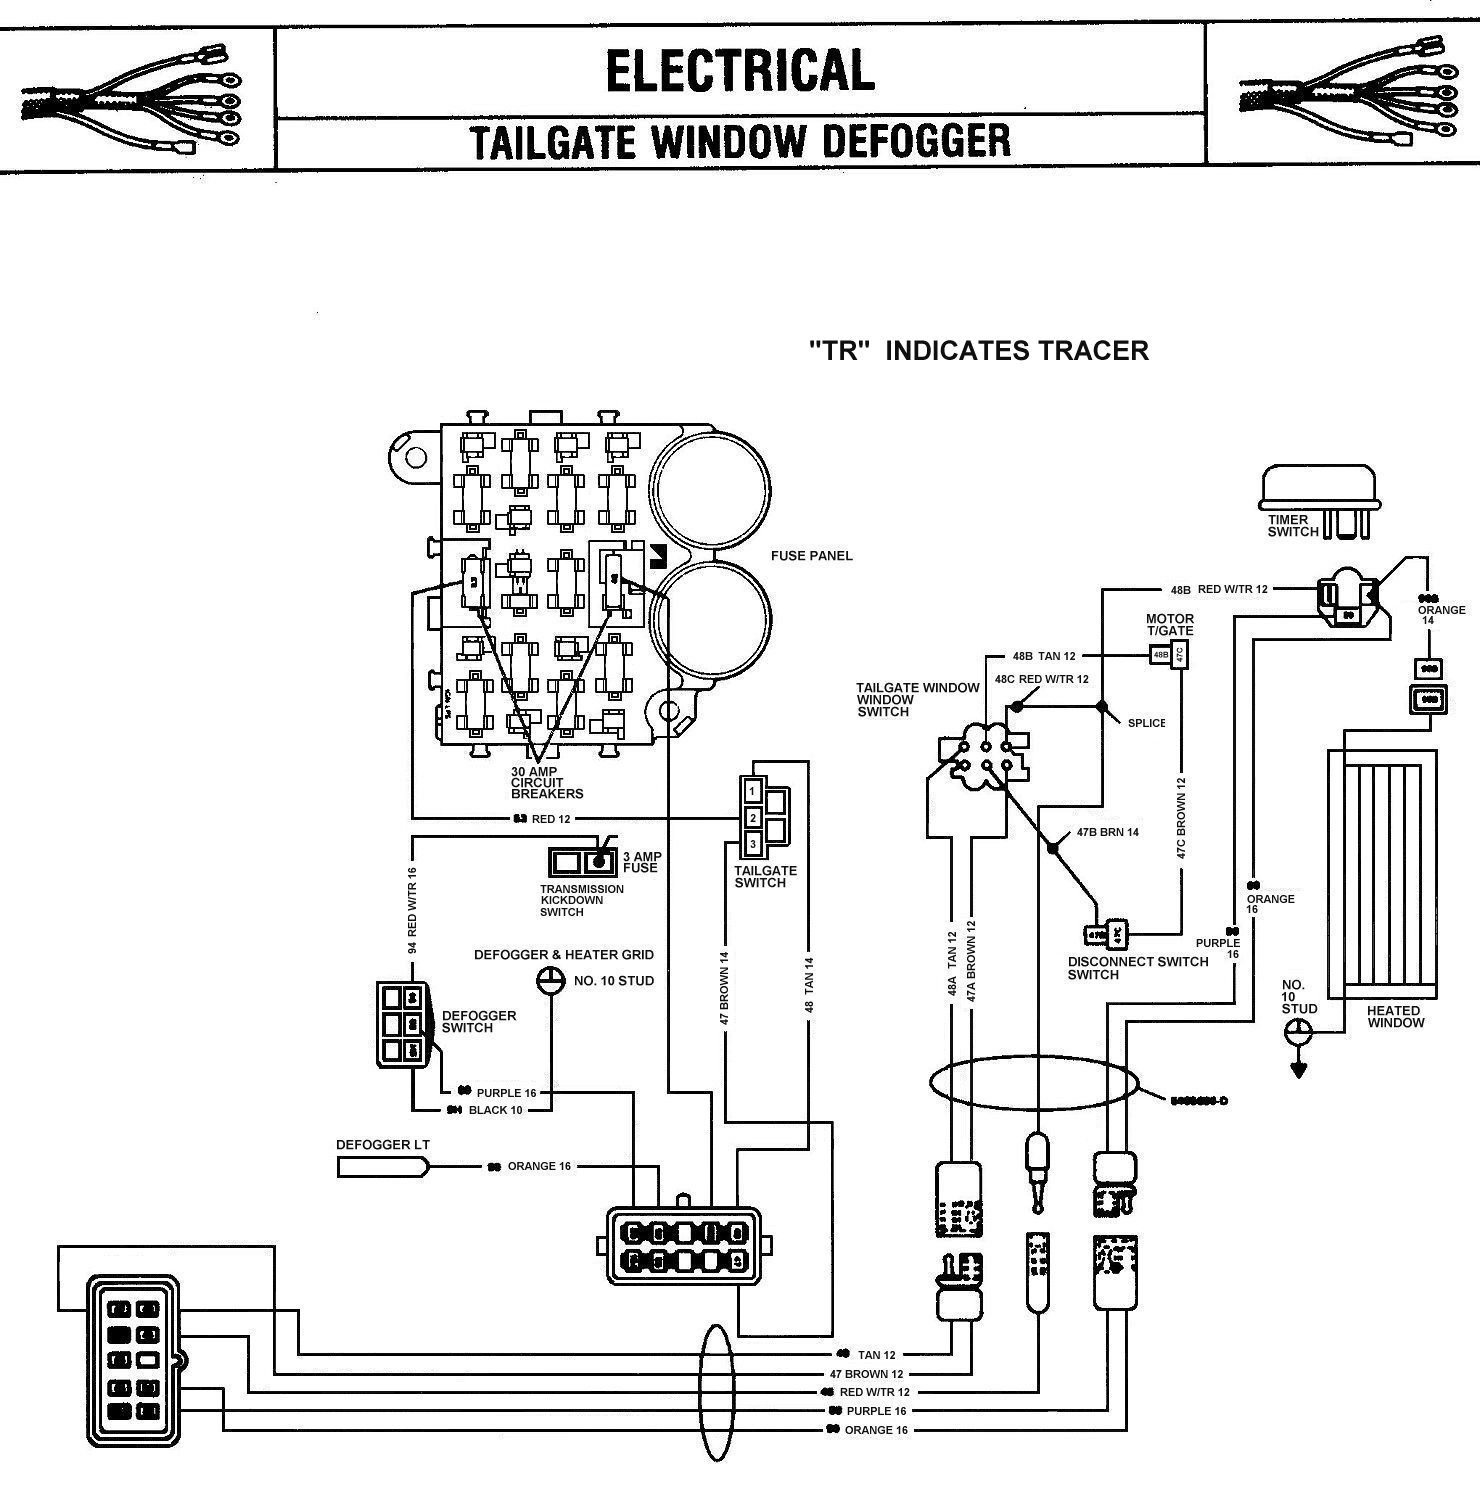 82 monte carlo wiring diagram simple wiring diagram rh david huggett co uk  84 monte carlo fuse box diagram 1984 monte carlo fuse box diagram